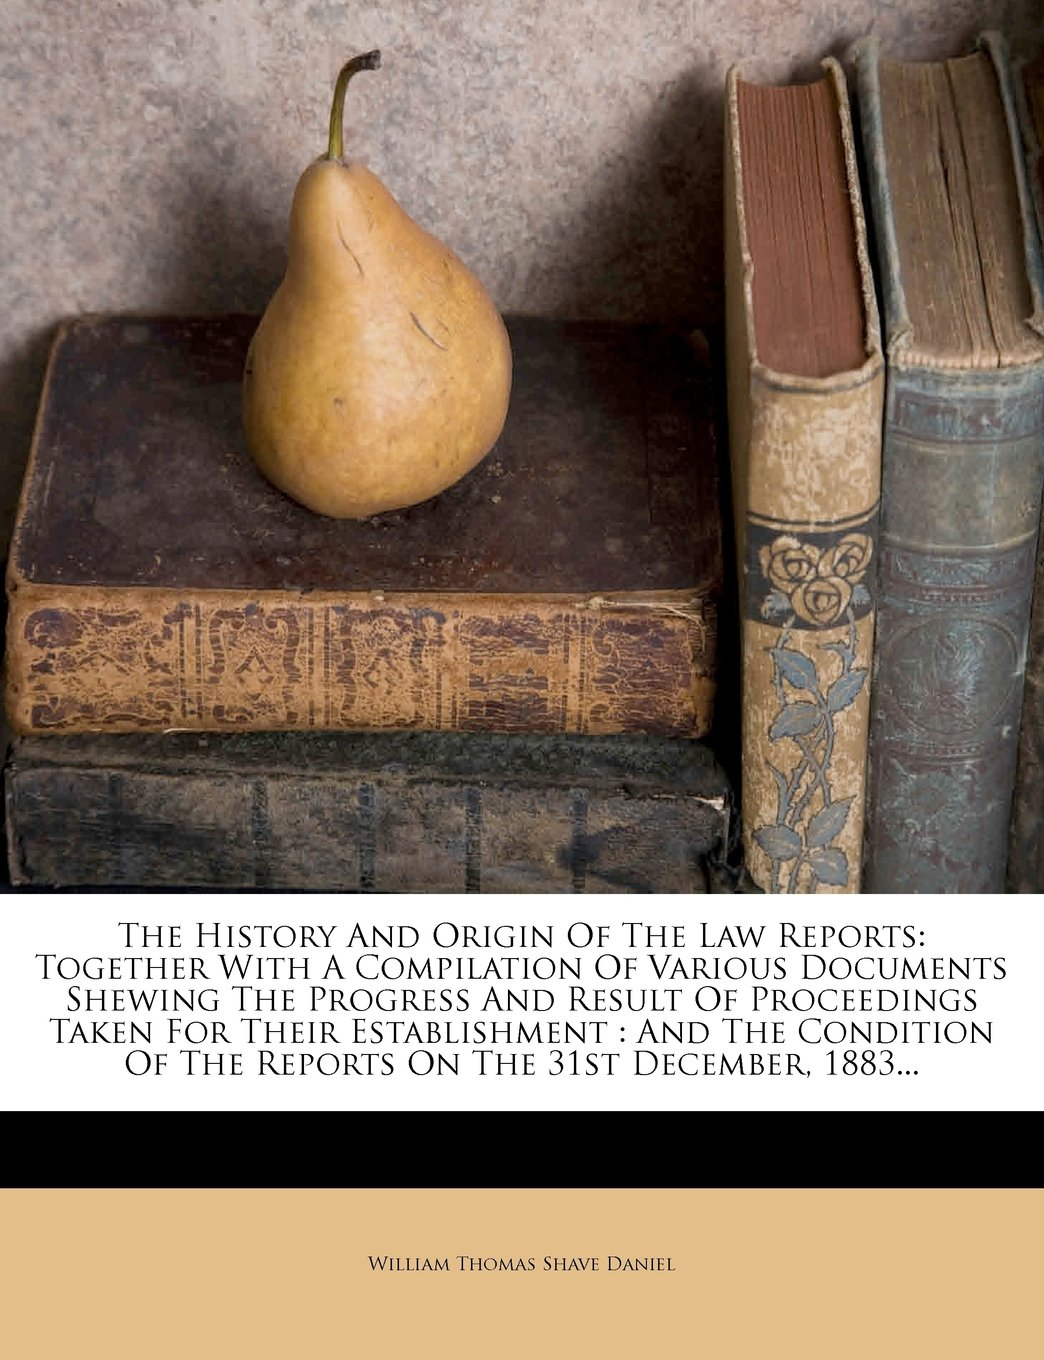 Read Online The History And Origin Of The Law Reports: Together With A Compilation Of Various Documents Shewing The Progress And Result Of Proceedings Taken For ... Of The Reports On The 31st December, 1883... pdf epub